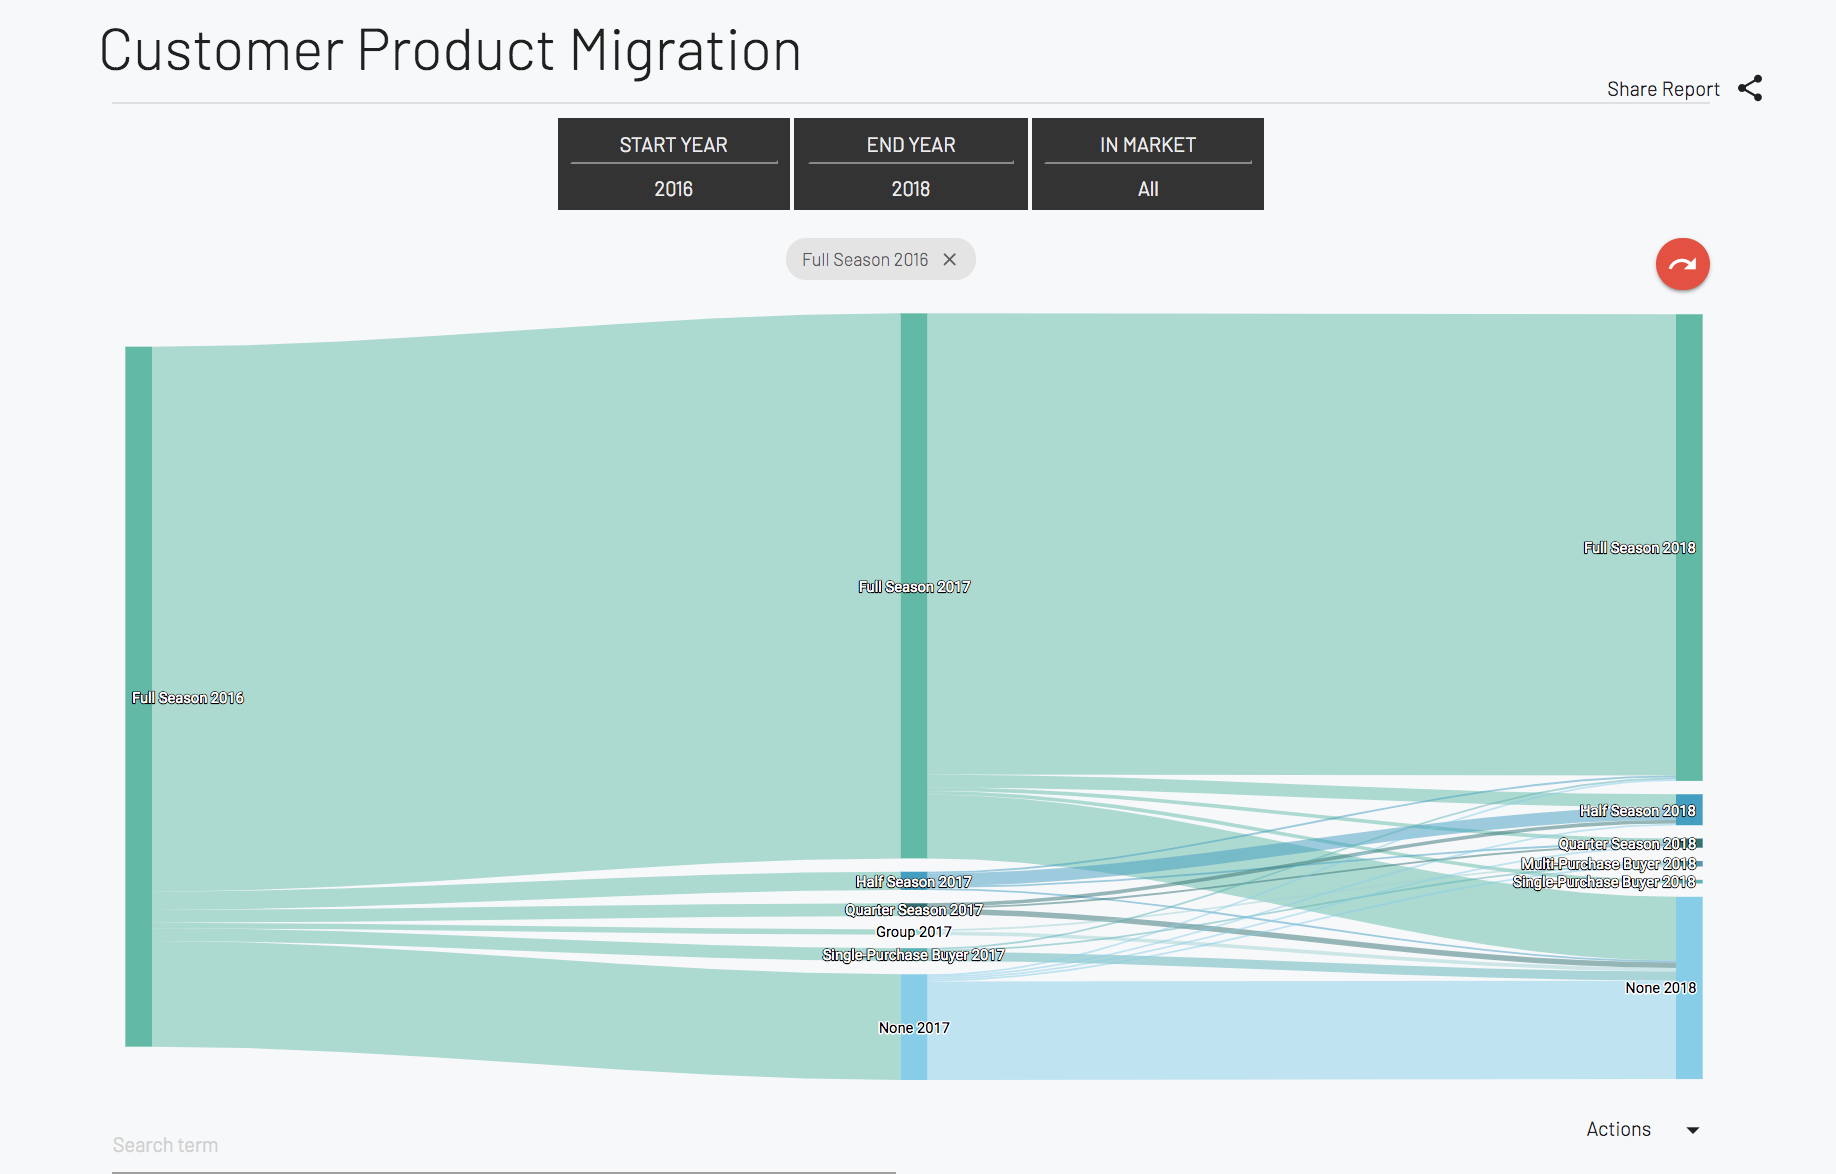 Customer Product Migration Report - Anonymized example of our Customer Product Migration report, which helps to identify and understand customer behaviour and migration between products year-over-year. Take action on different segments by downloading lists or sending directly to an email marketing campaign.